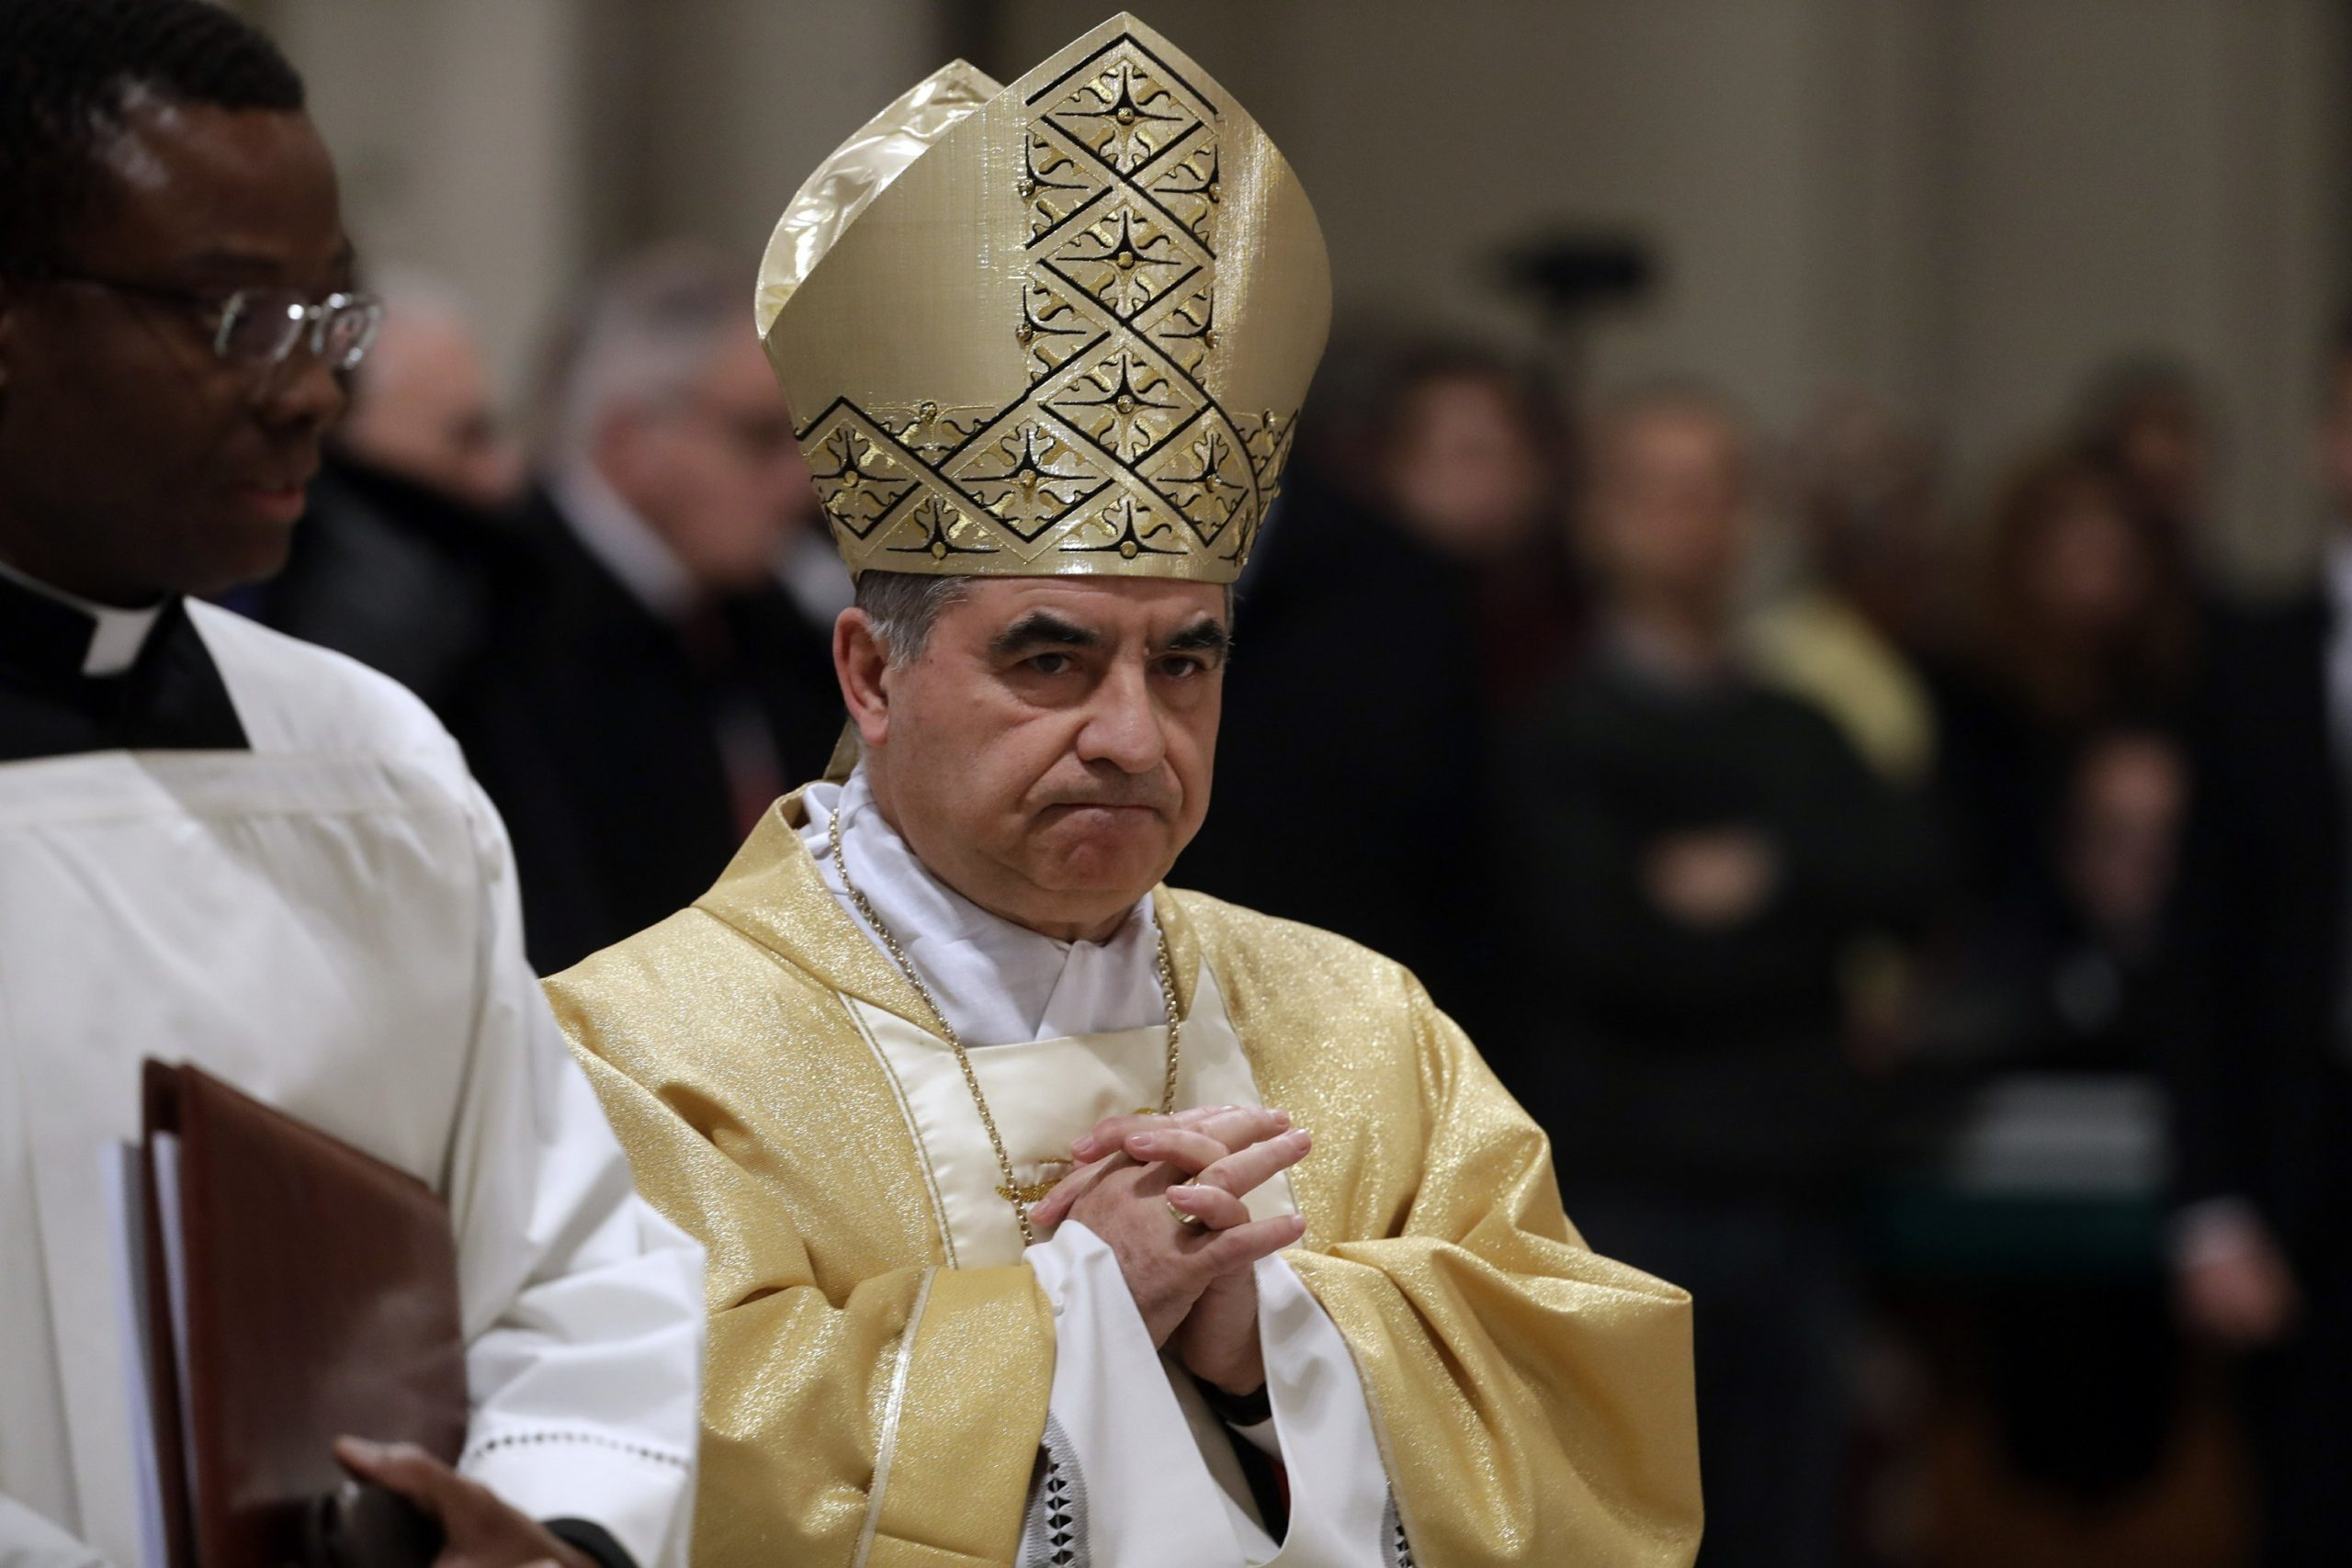 In the midst of the scandal the powerful Vatican cardinal Besiu resigned